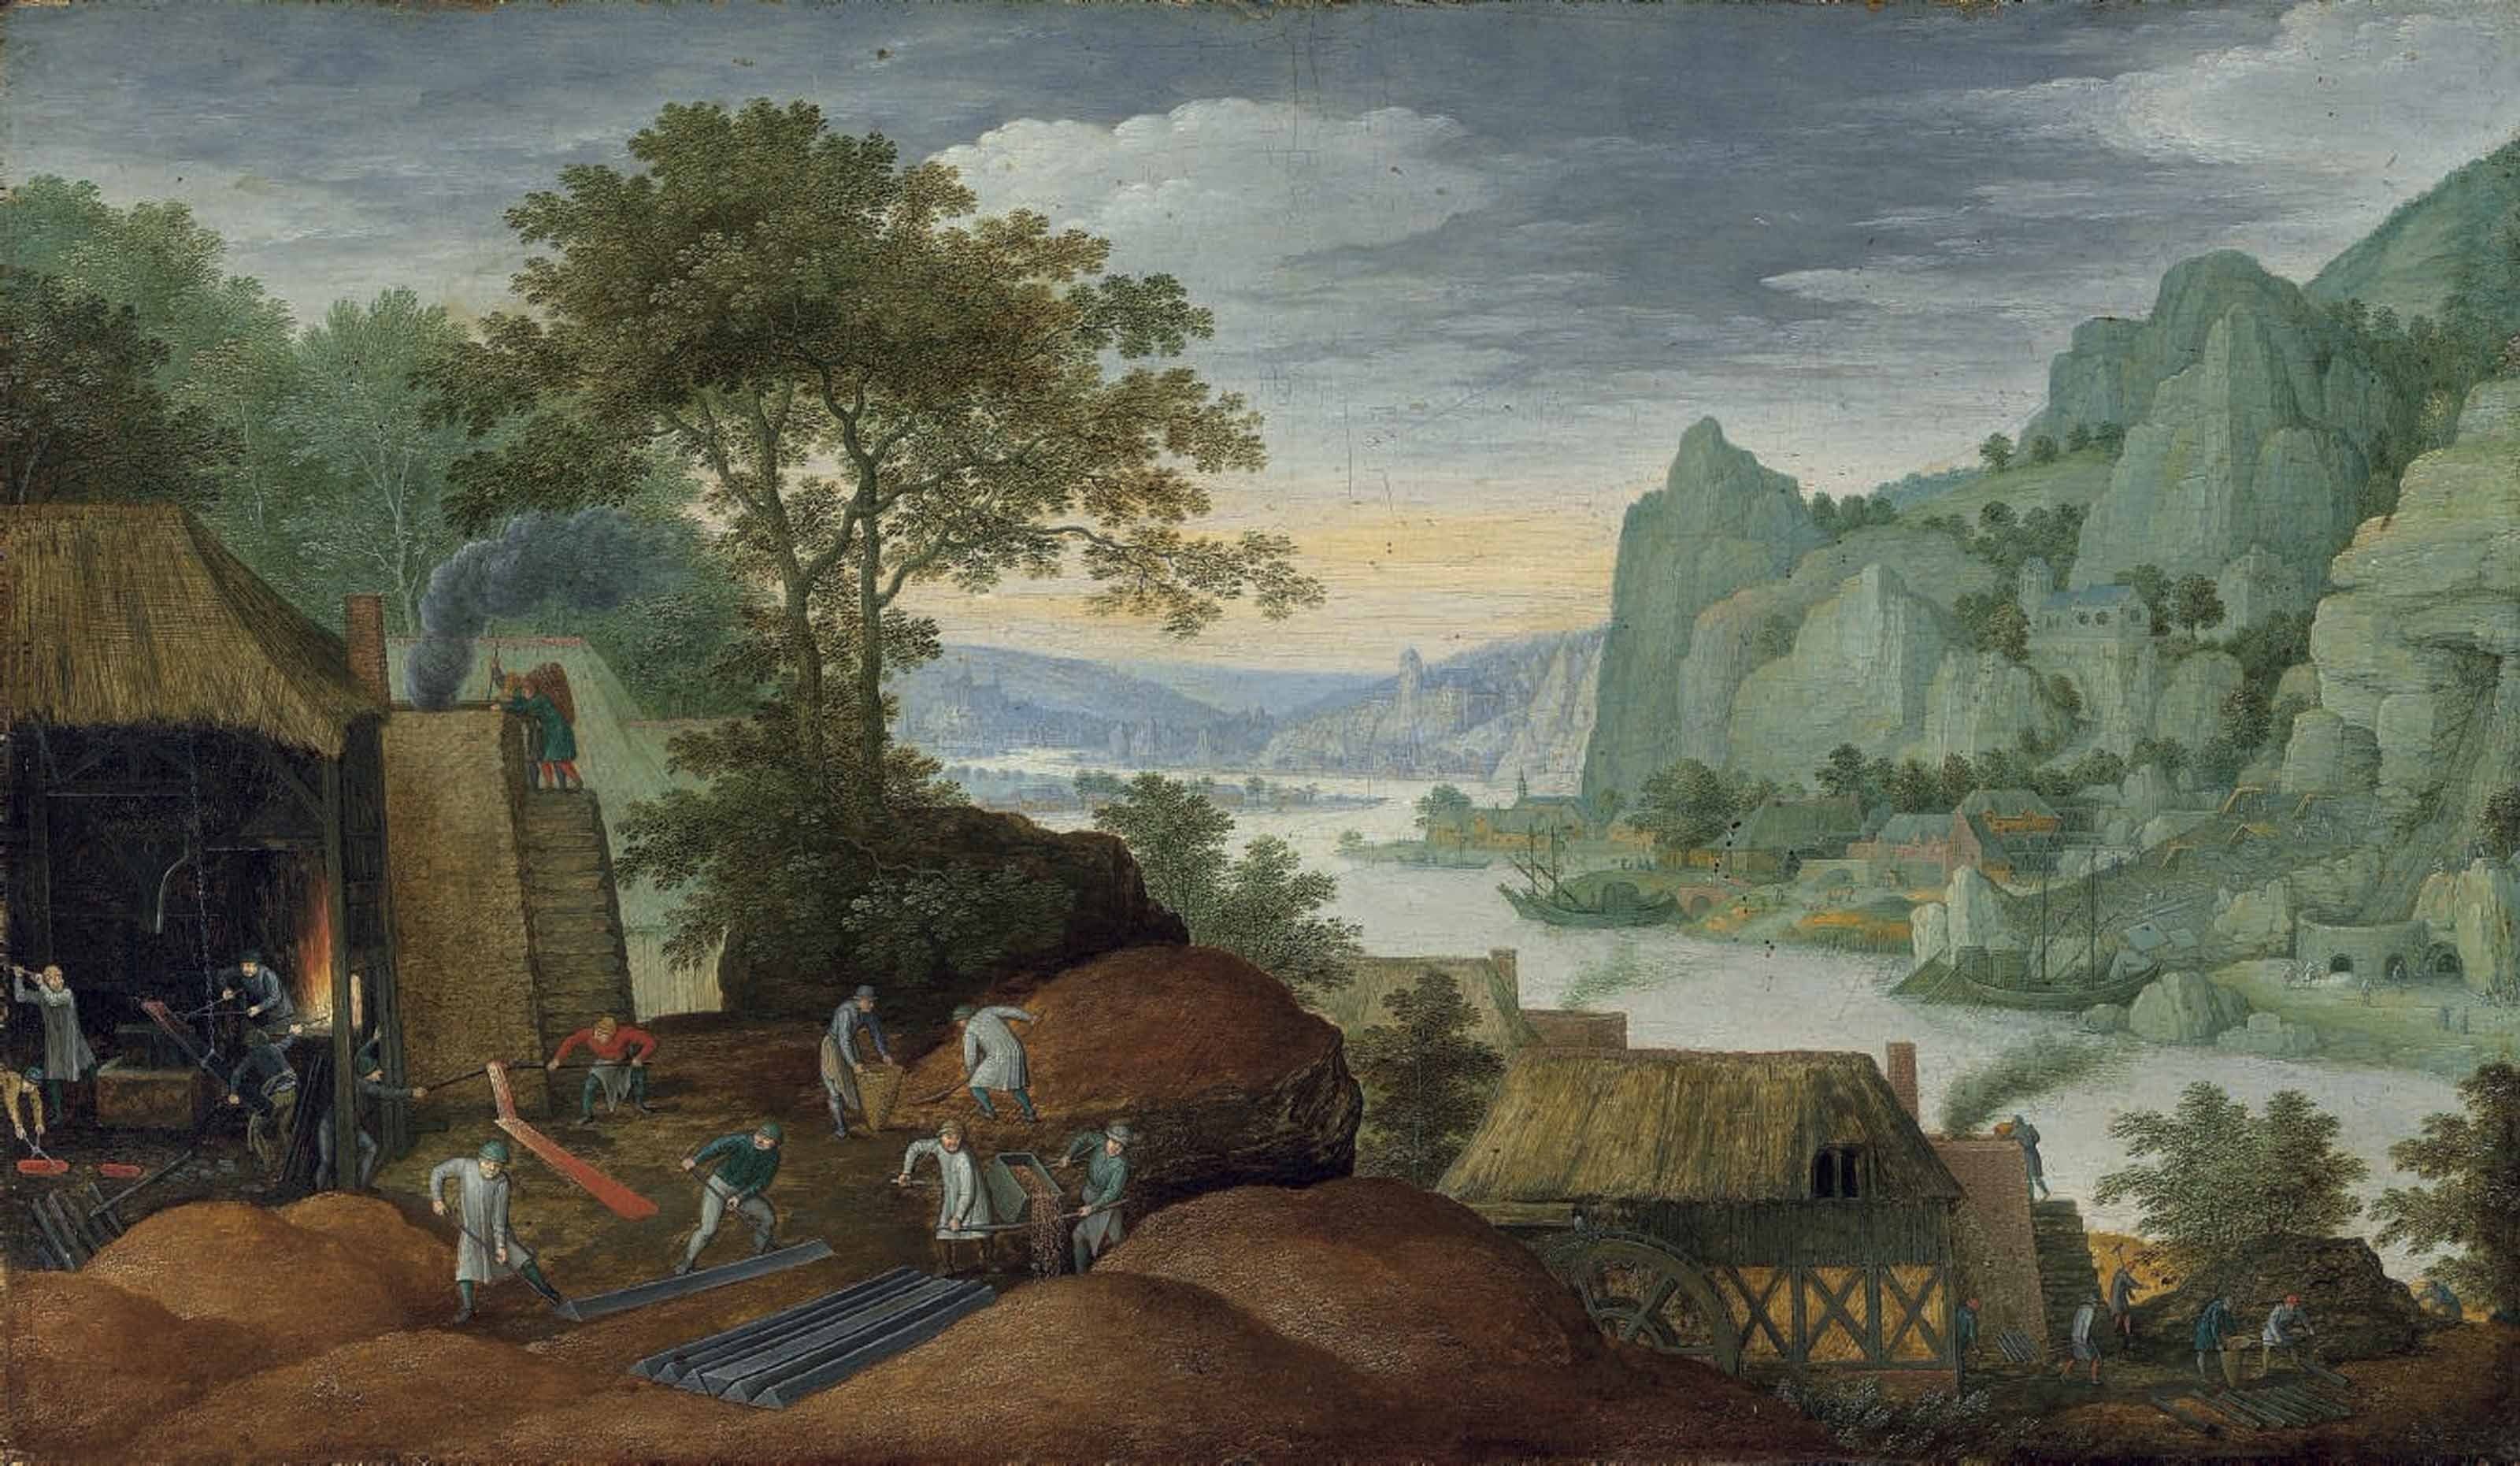 A rocky landscape with figures by an iron foundry, a river and houses on the bank beyond